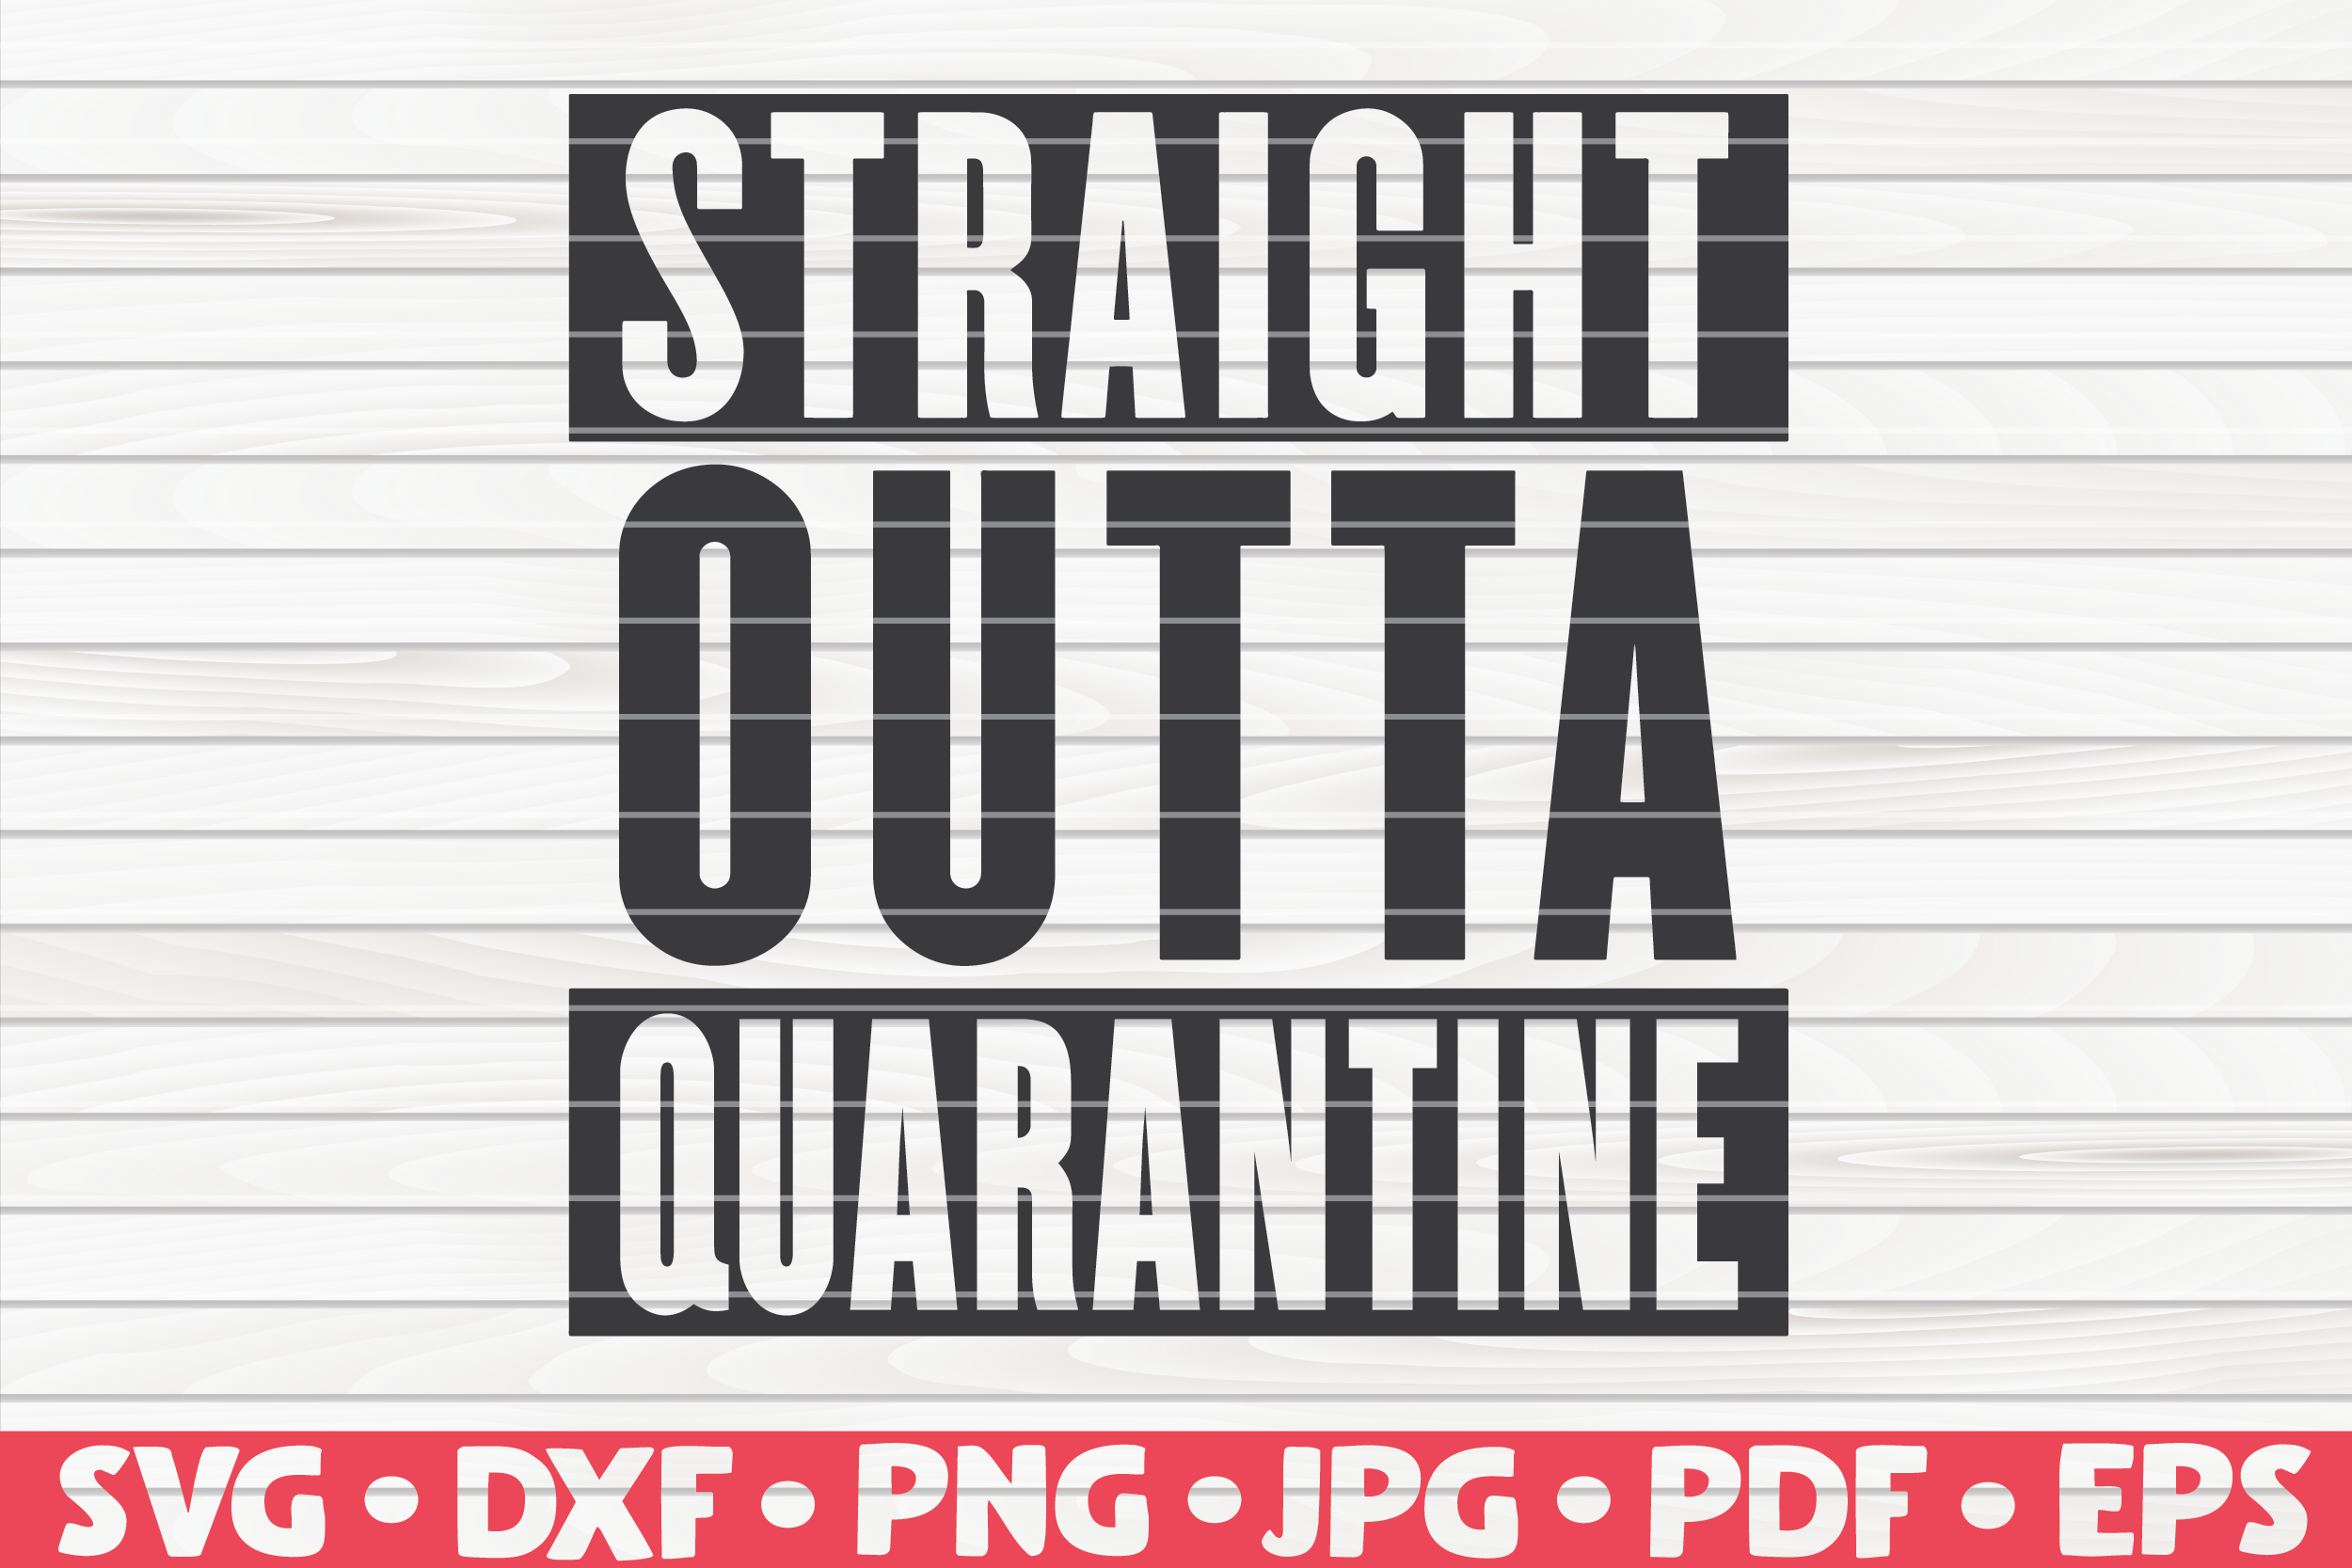 Download Free Straight Outta Quarantine Graphic By Mihaibadea95 Creative Fabrica for Cricut Explore, Silhouette and other cutting machines.